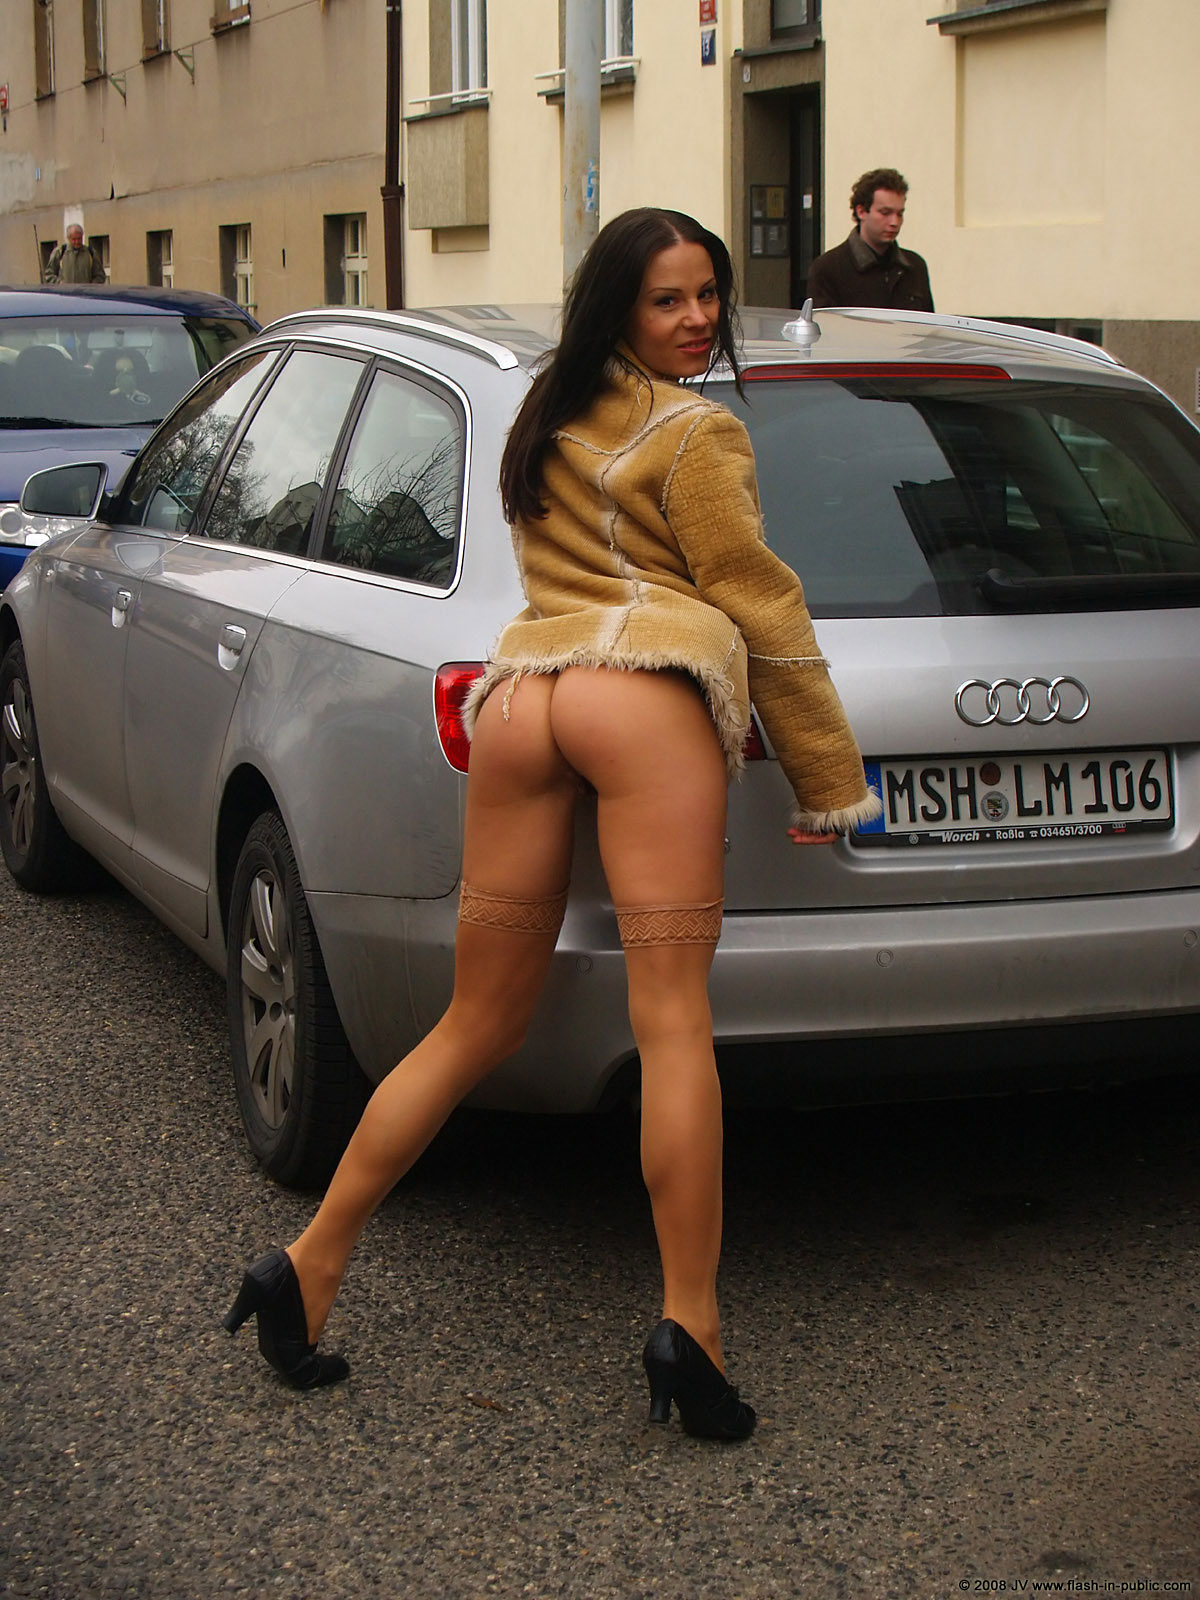 alexandra-g-bottomless-stockings-flash-in-public-31